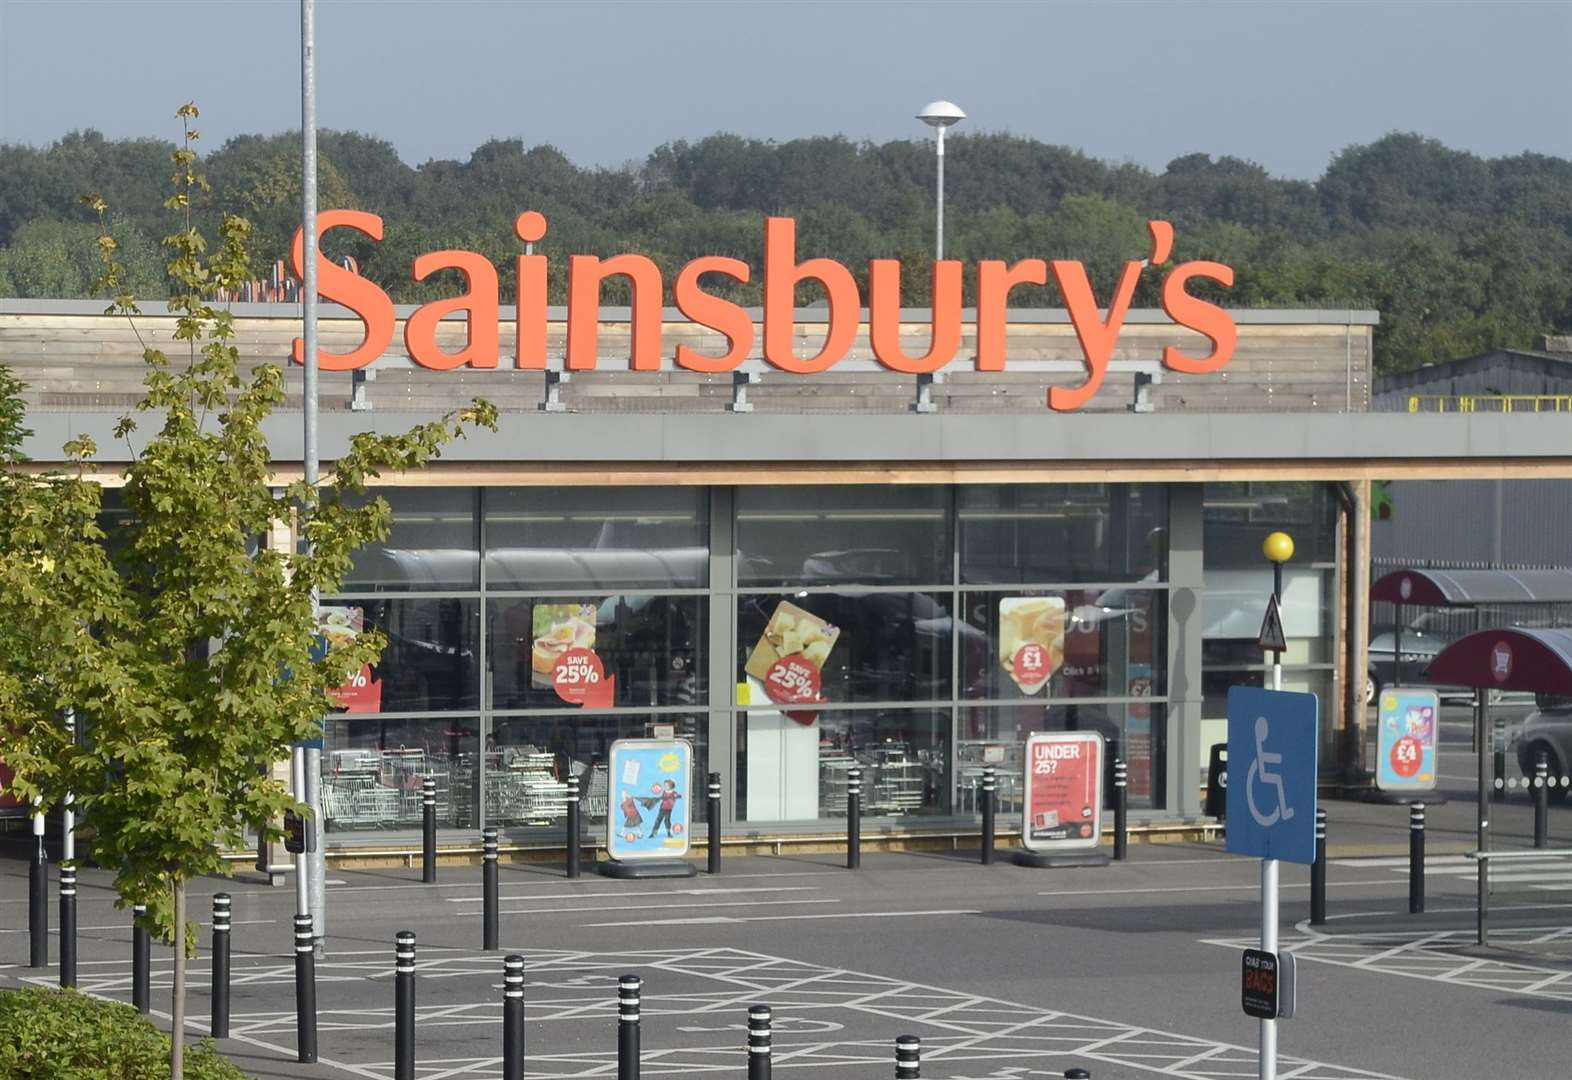 Man charged with supermarket shoplifting spree